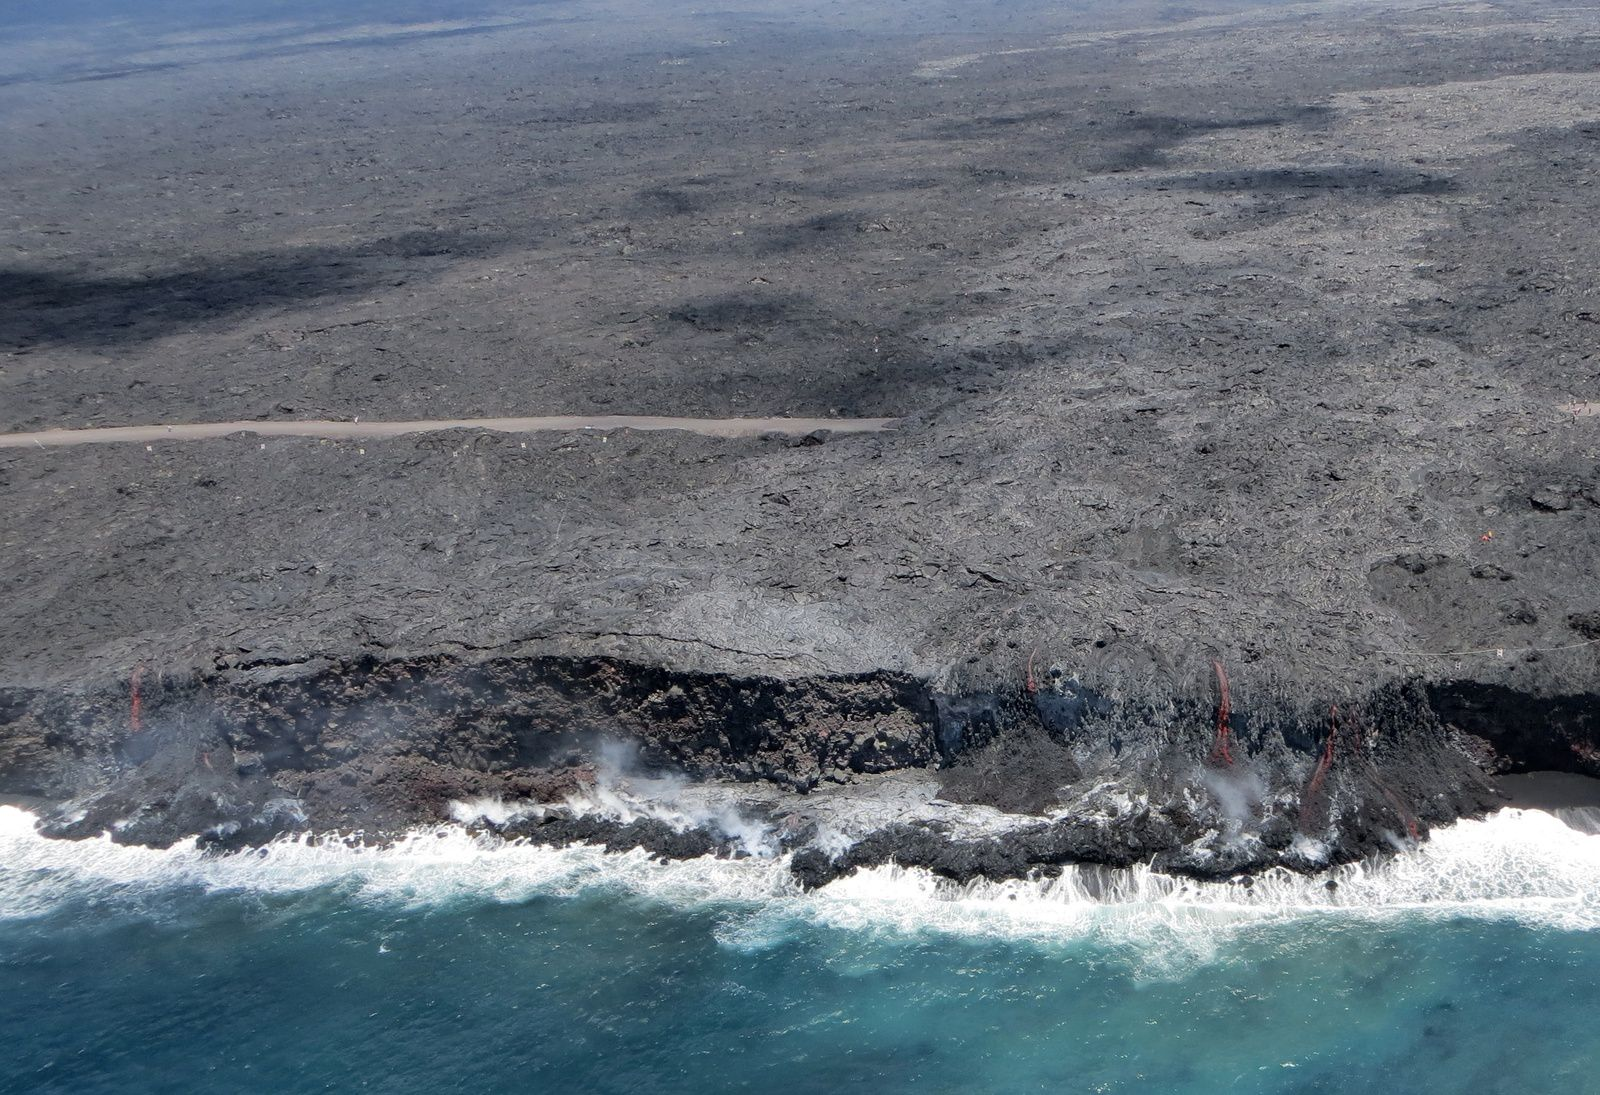 Hawaii / Pu'u O'o - two sea entrances of the lava flow 61G - close up of a photo HVO / USGS